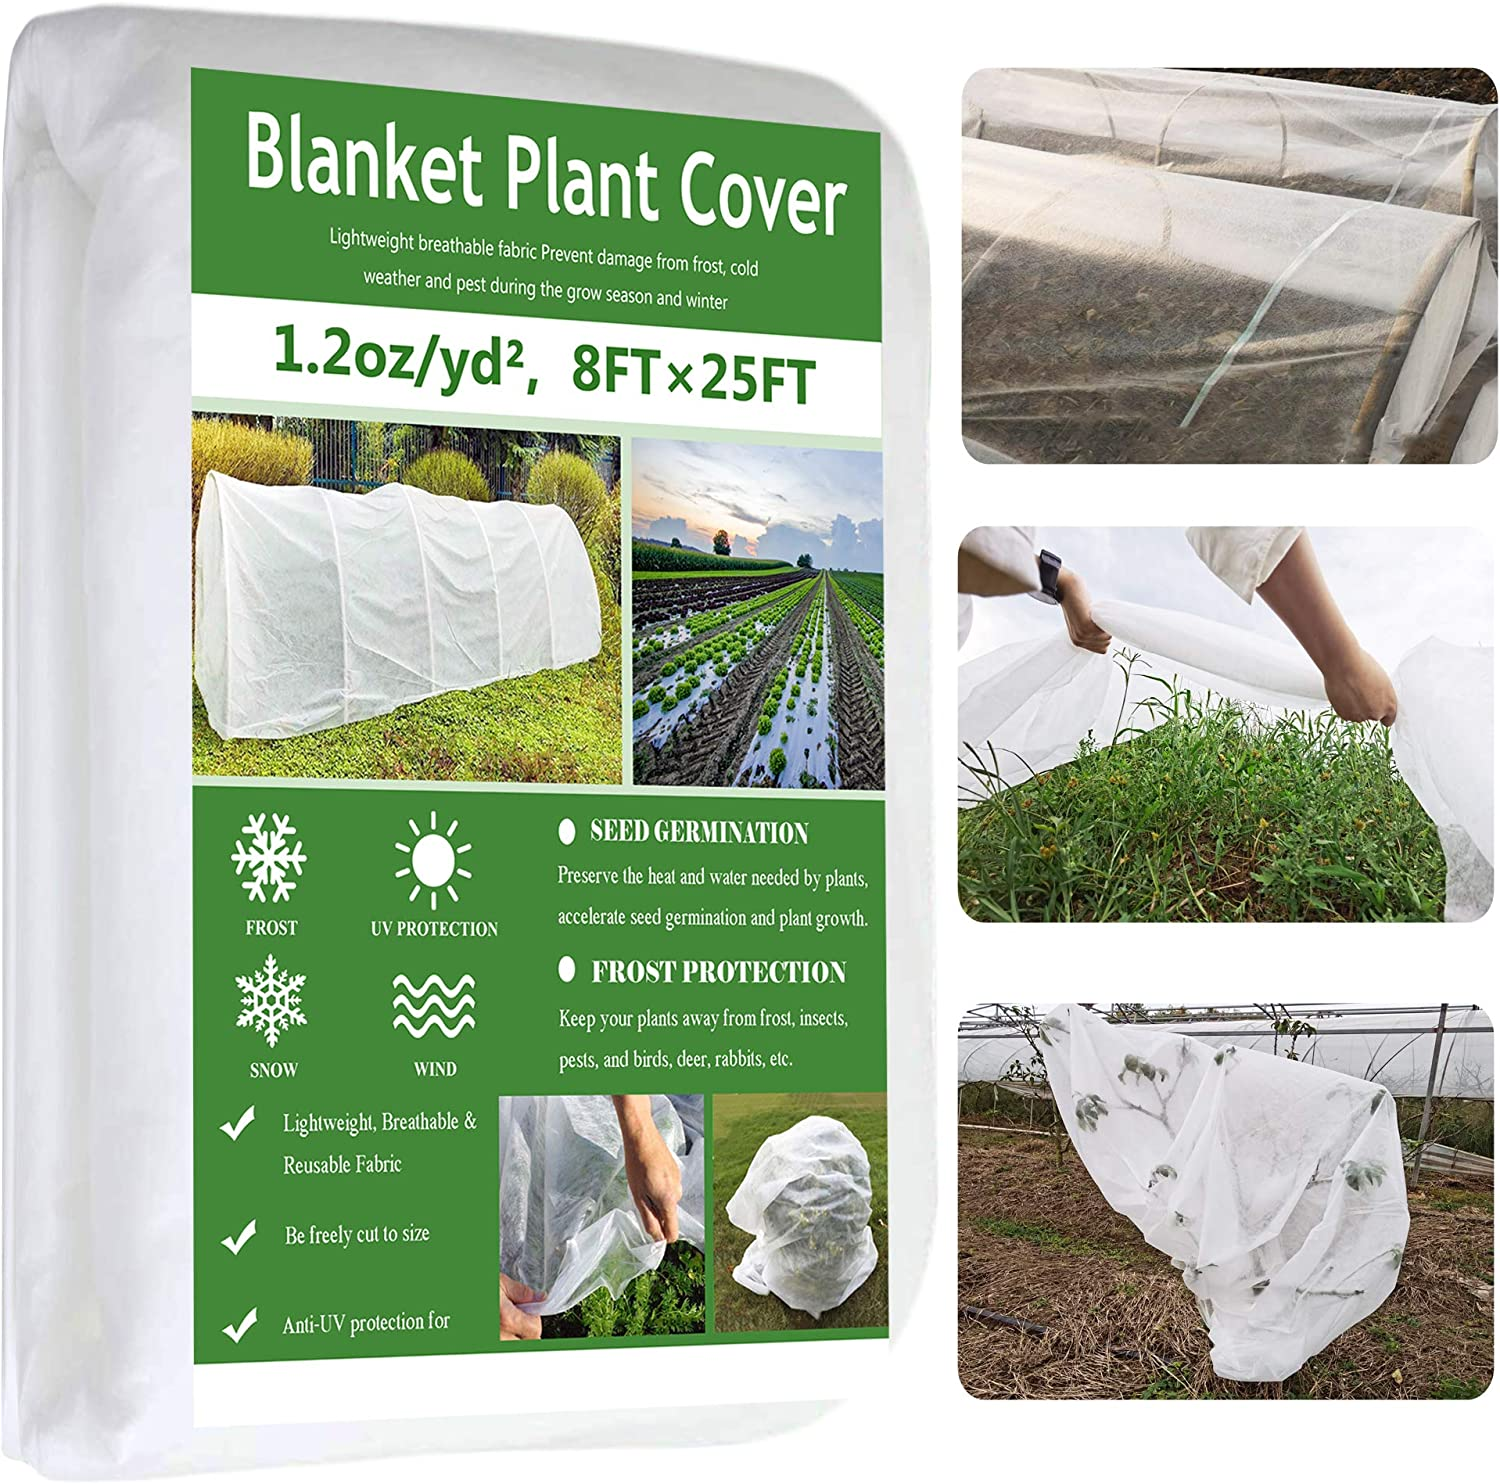 Garden EXPERT Plant Covers Freeze Protection Floating Row Cover Thickened 1.2oz Fabric Frost Cloth Plant Blanket for Plants & Vegetables in Winter(8FTx25FT)